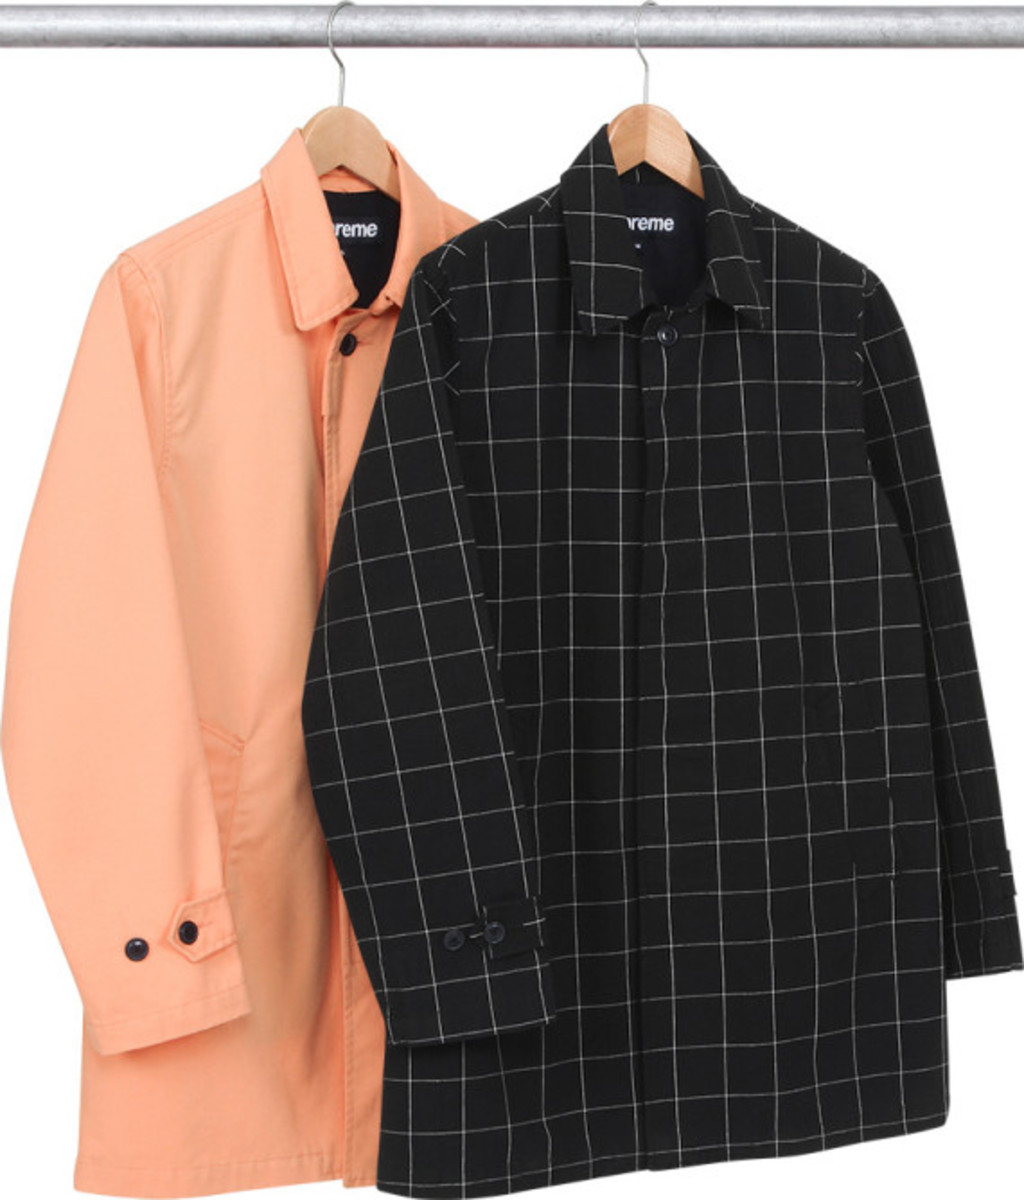 supreme-spring-summer-2014-outerwear-collection-13